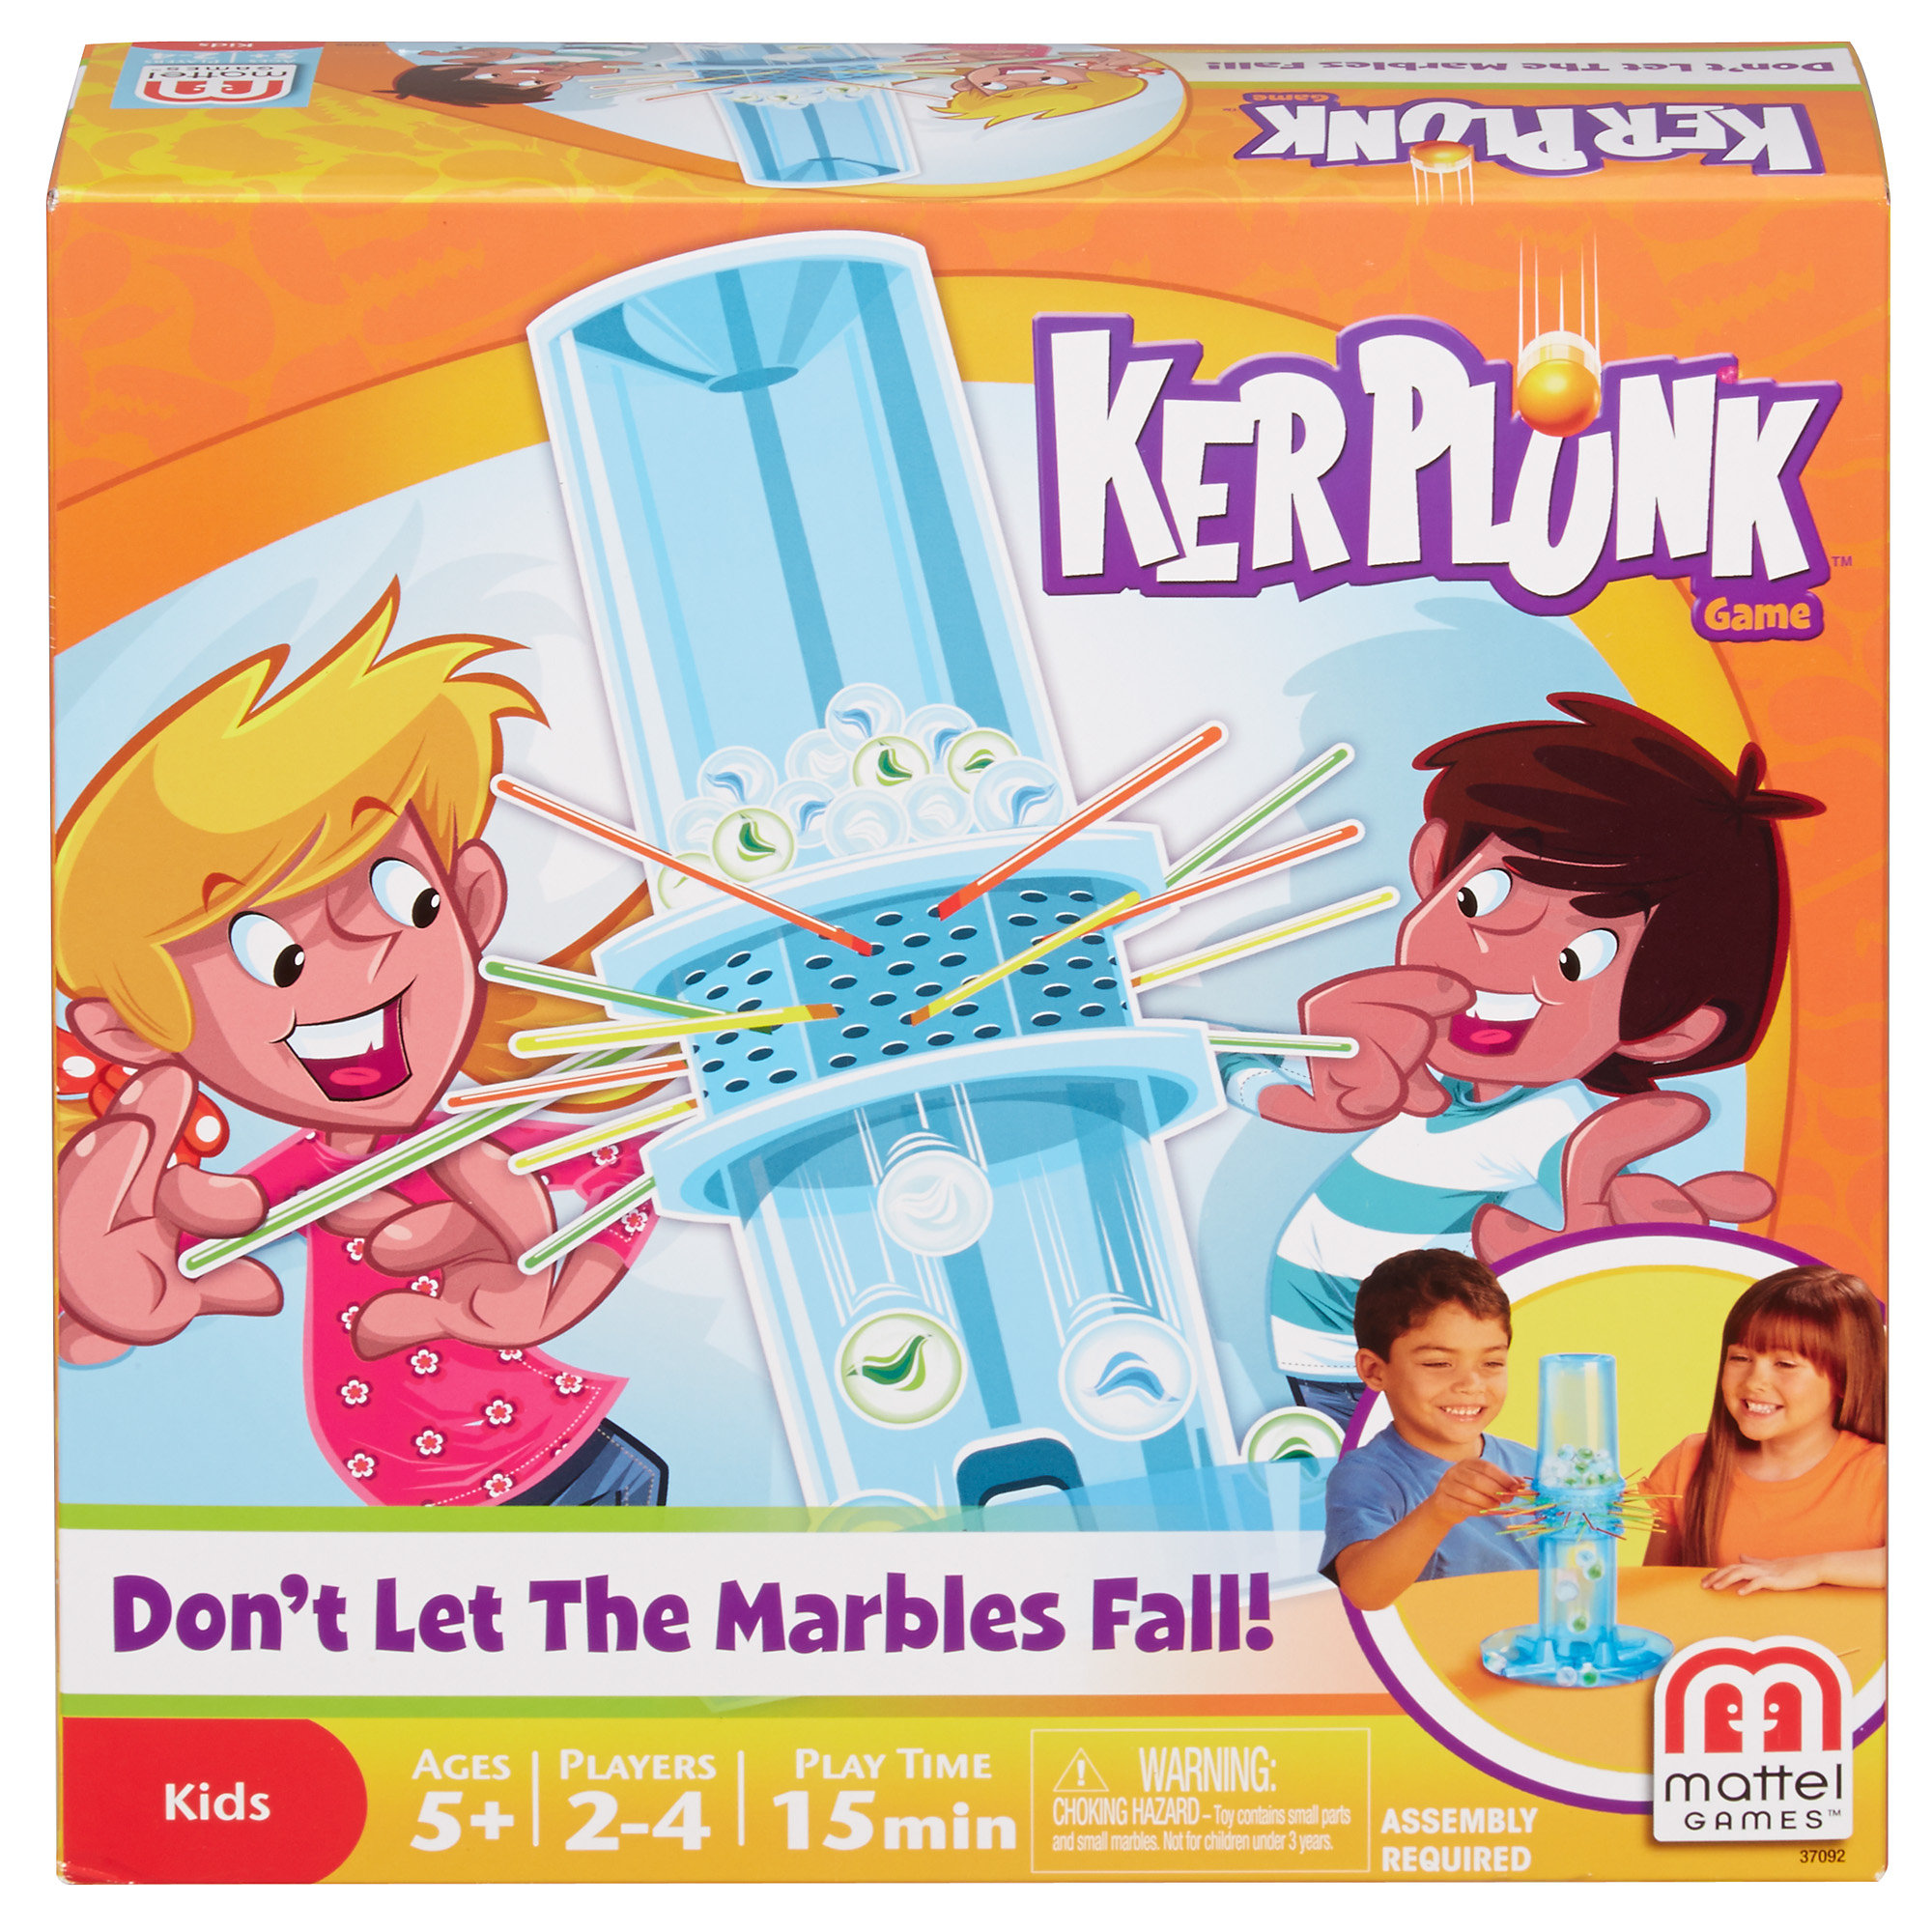 Ker Plunk! Game- Don't Let the Marbles Fall!